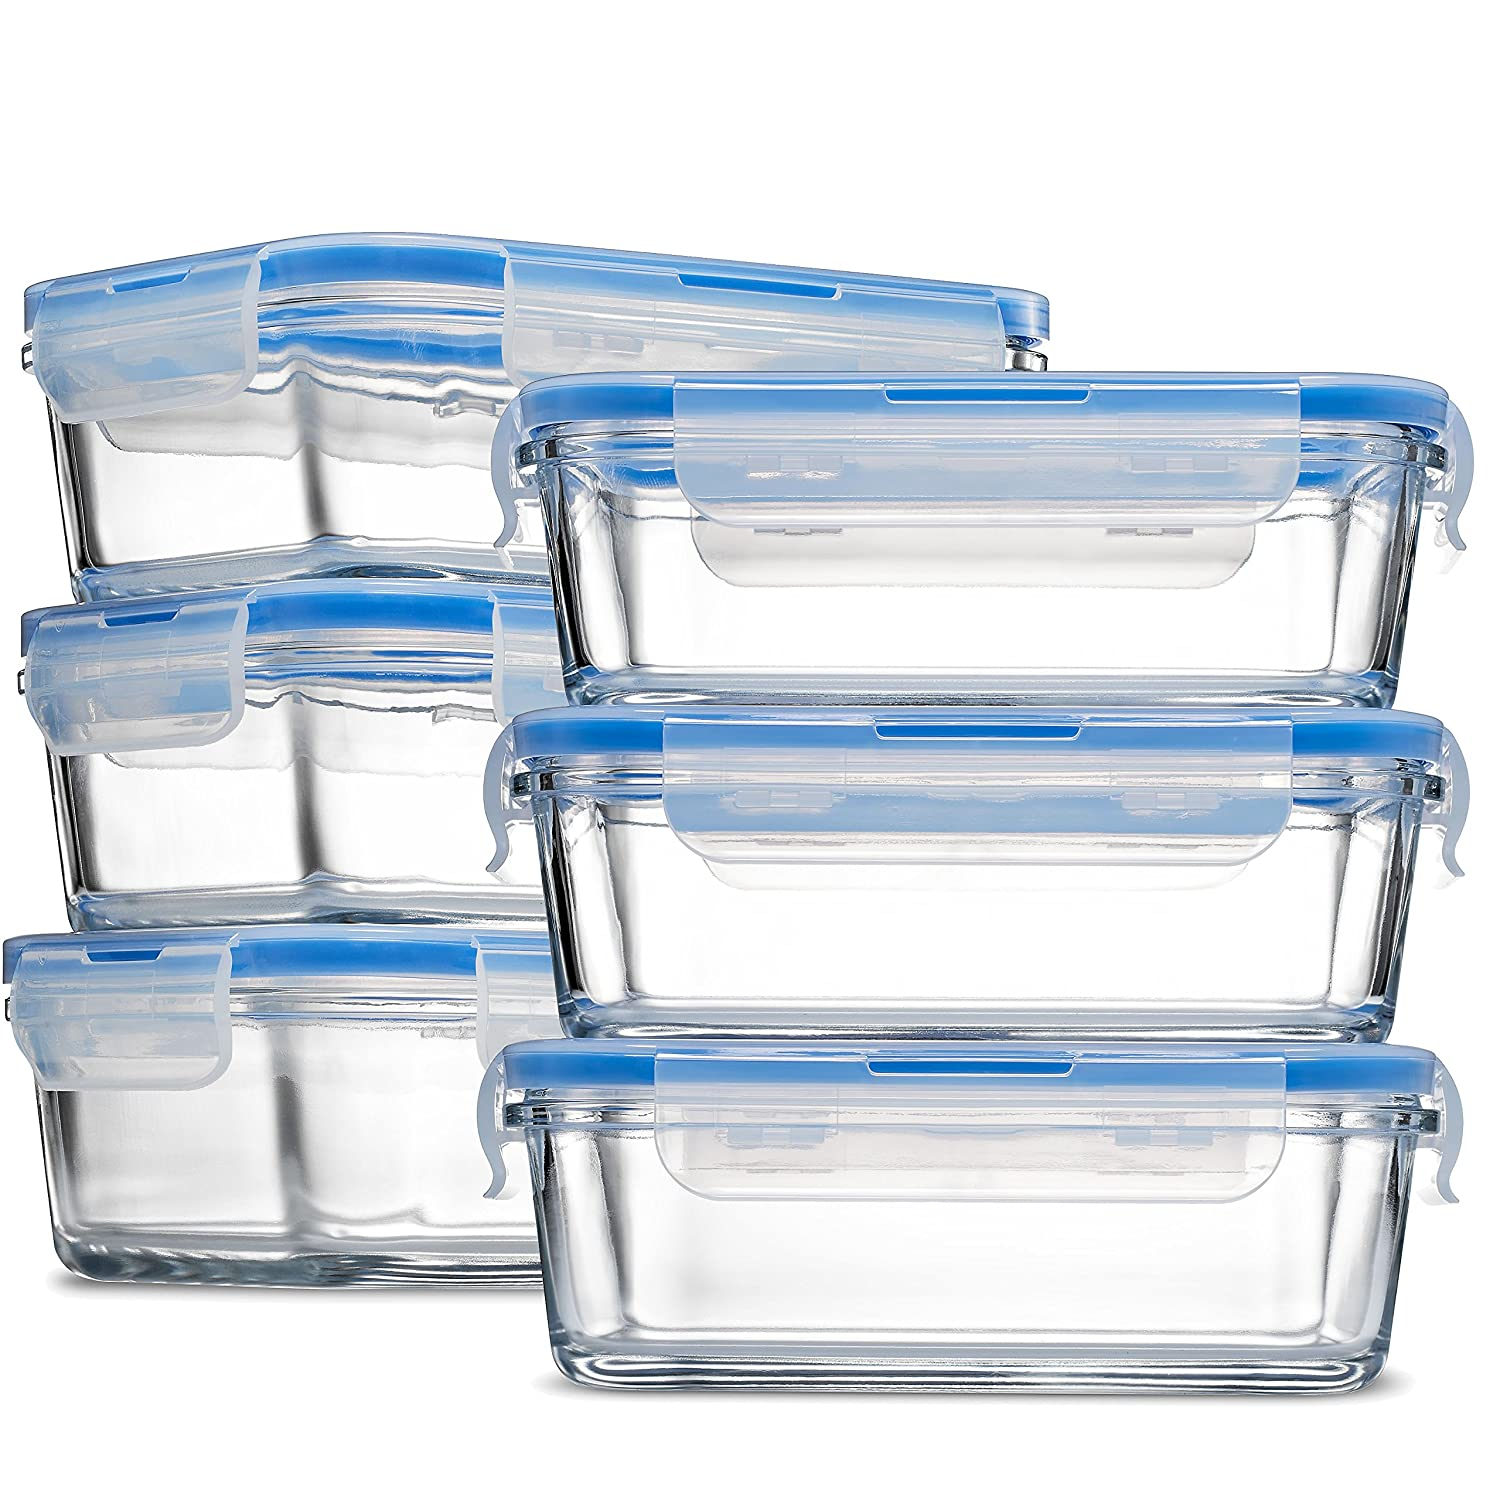 Glass Meal Prep Food Storage Containers - (6-Pack 28 Oz.) Portion Control Lunch Containers, with BPA Free Airtight Snap Locking Lids, Prep, Freeze, Reheat, Bake, Oven Safe Containers for Home and Work FD-G101/6